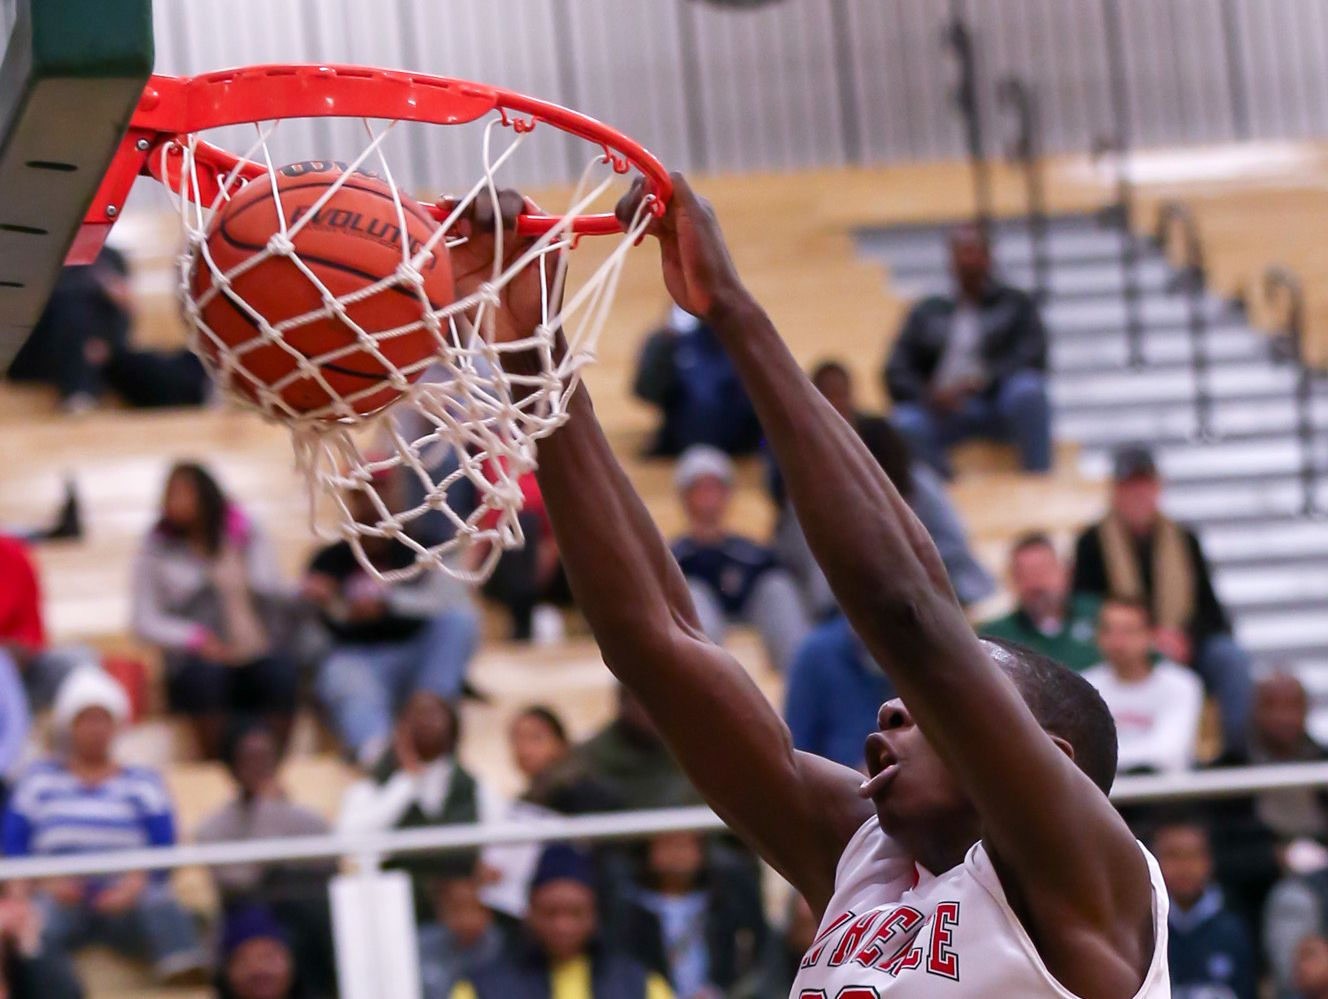 Lawrence North big man Ra Kpedi was a force inside for the Wildcats against Cathedral on Wednesday night.